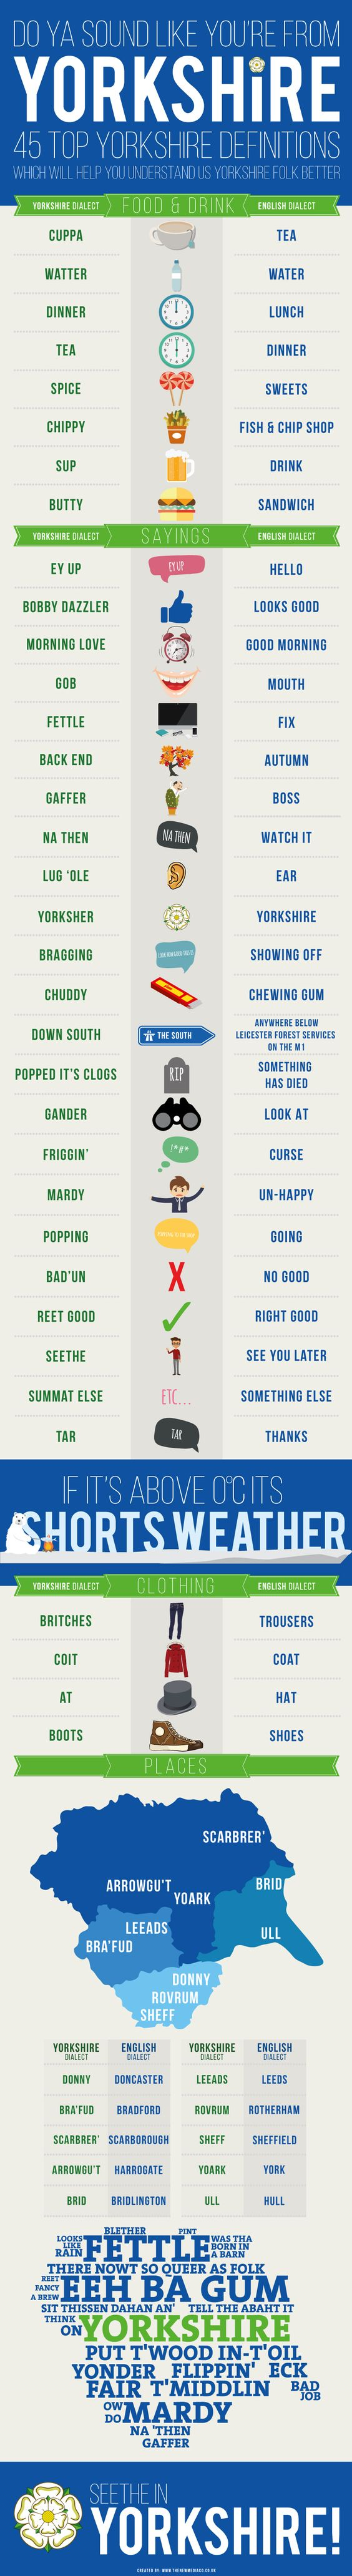 Do Ya Sound Like You're From Yorkshire? #infographic